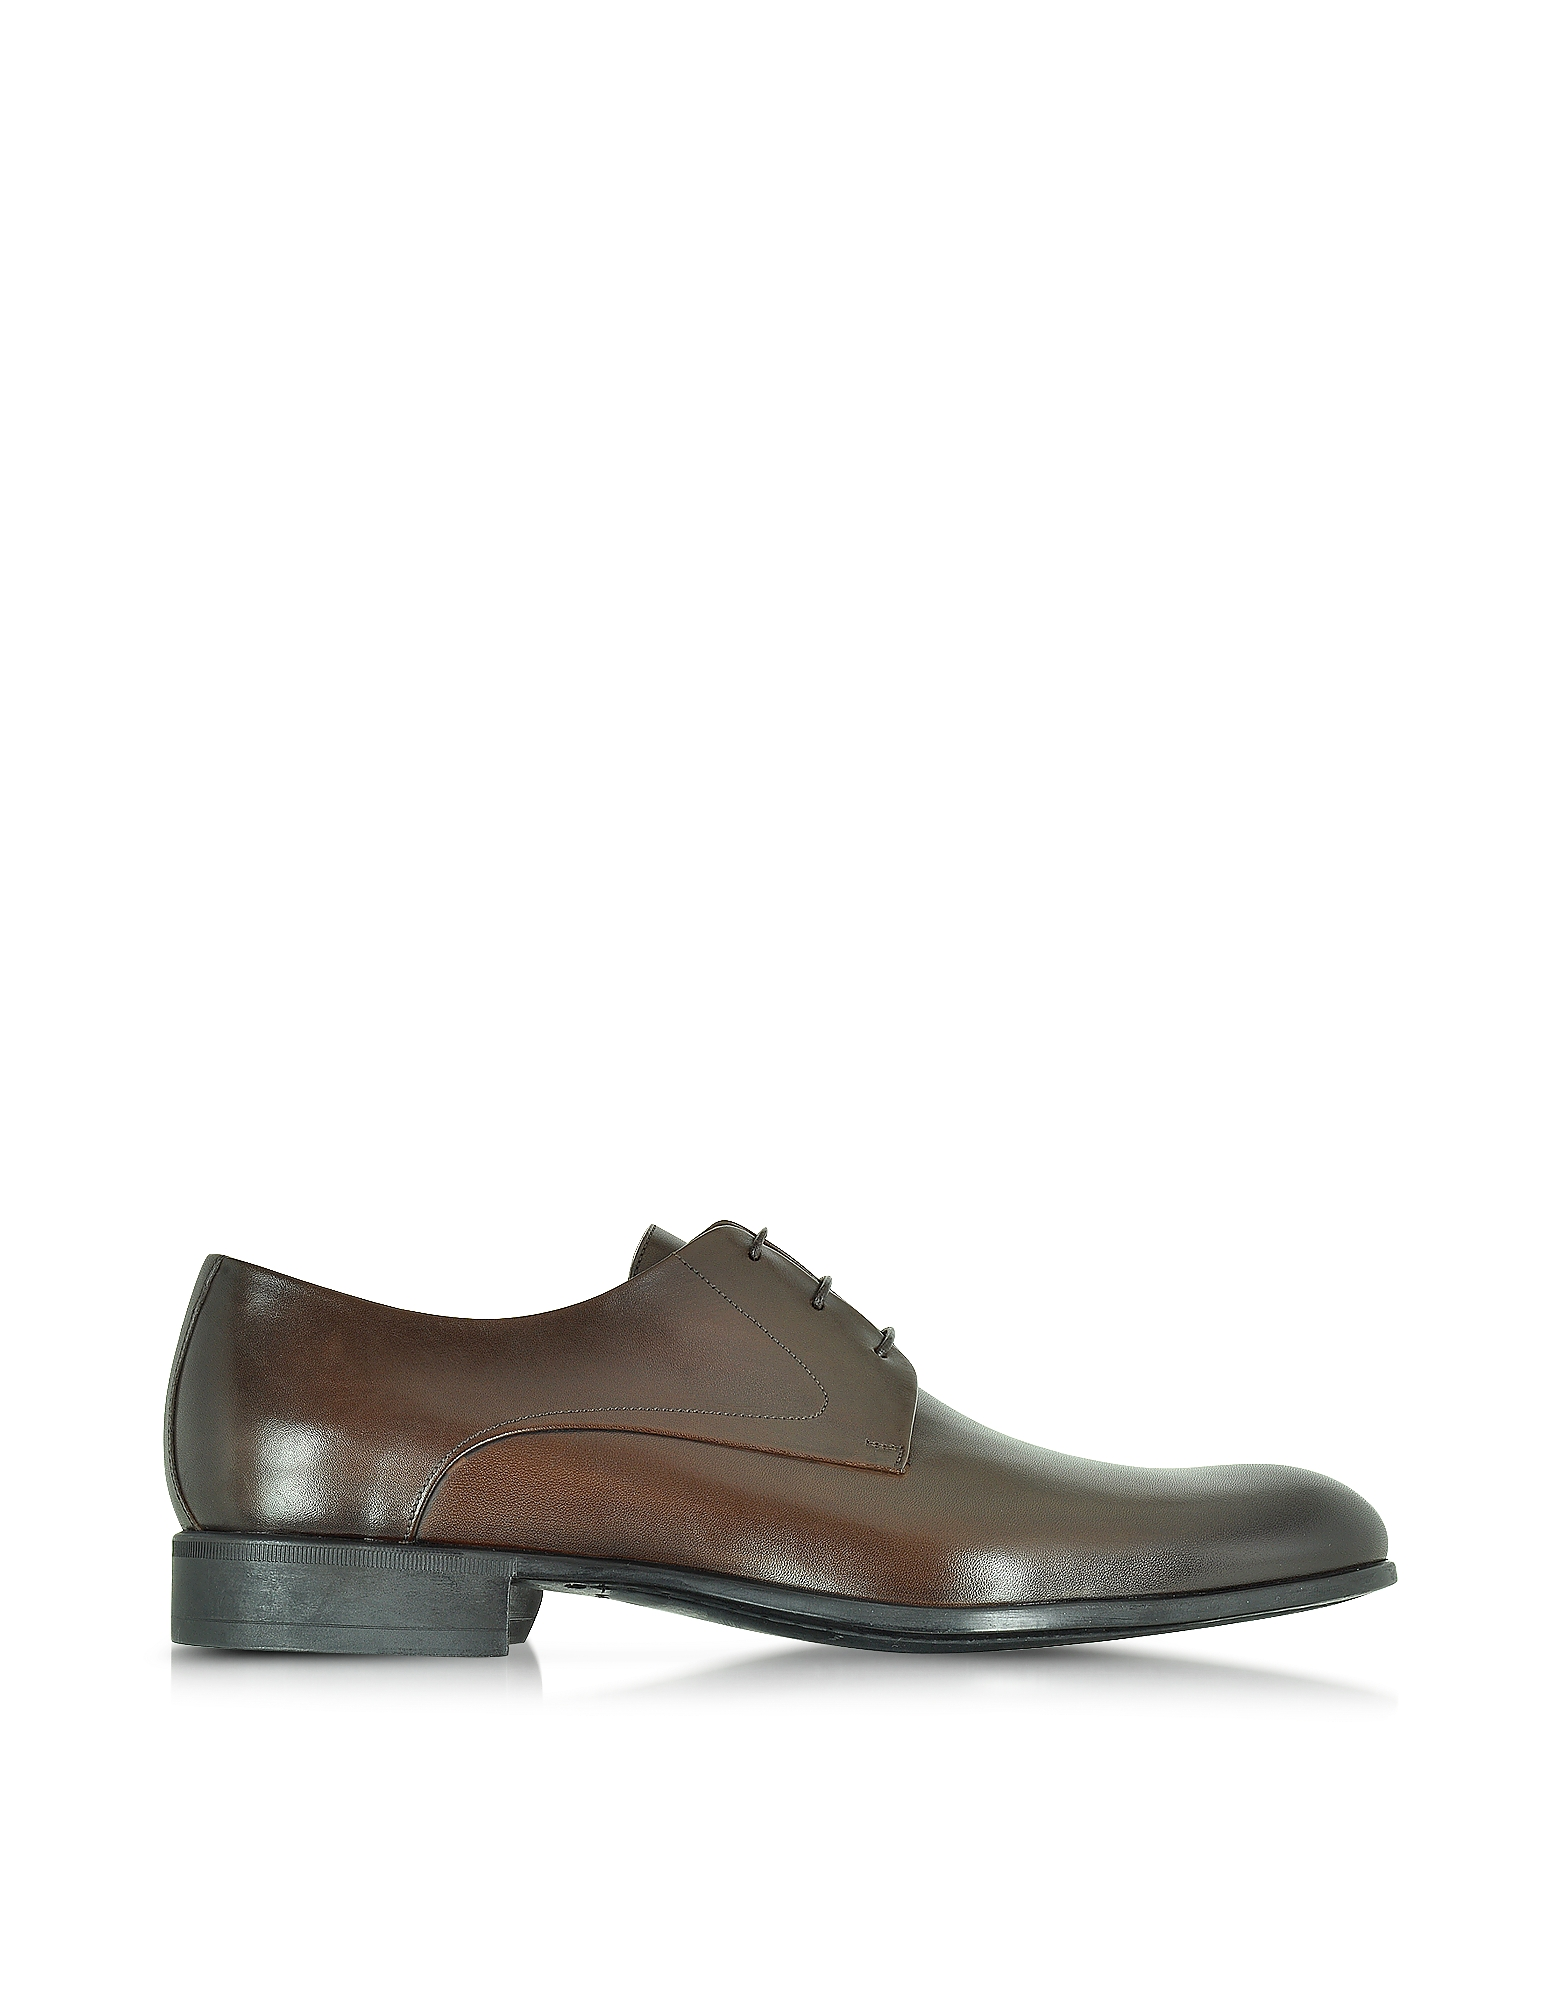 Moreschi Shoes, Liverpool Dark Brown Leather Derby w/Rubber Sole